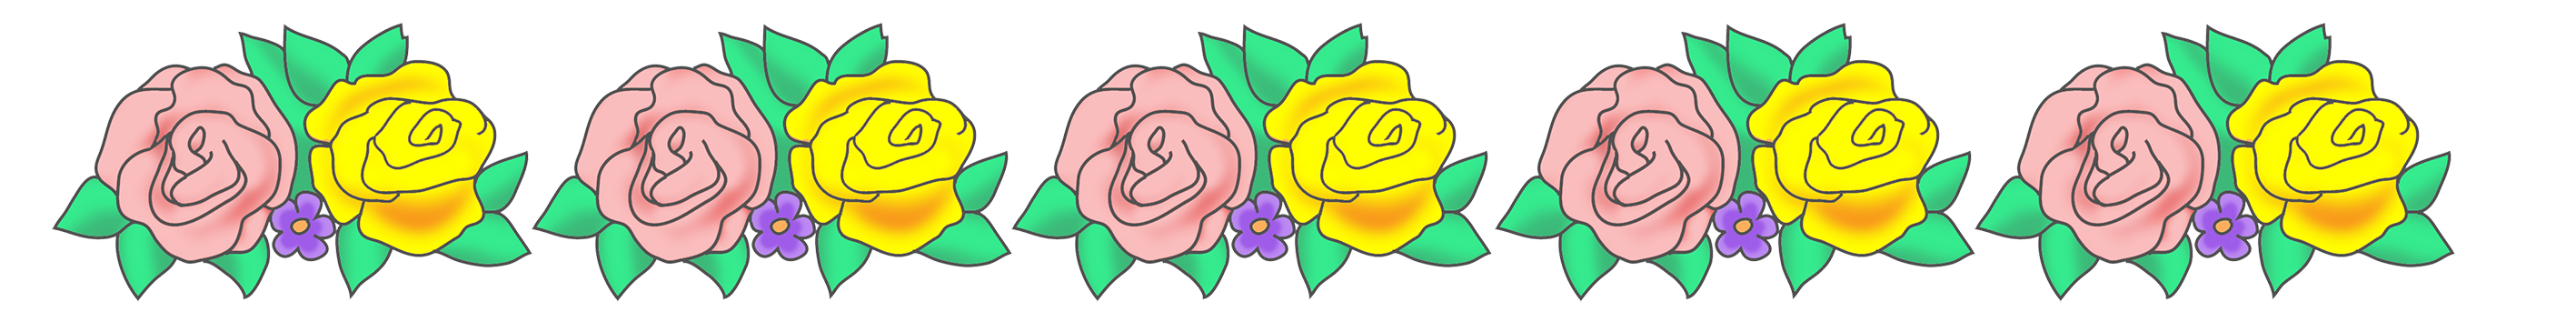 rose flower border